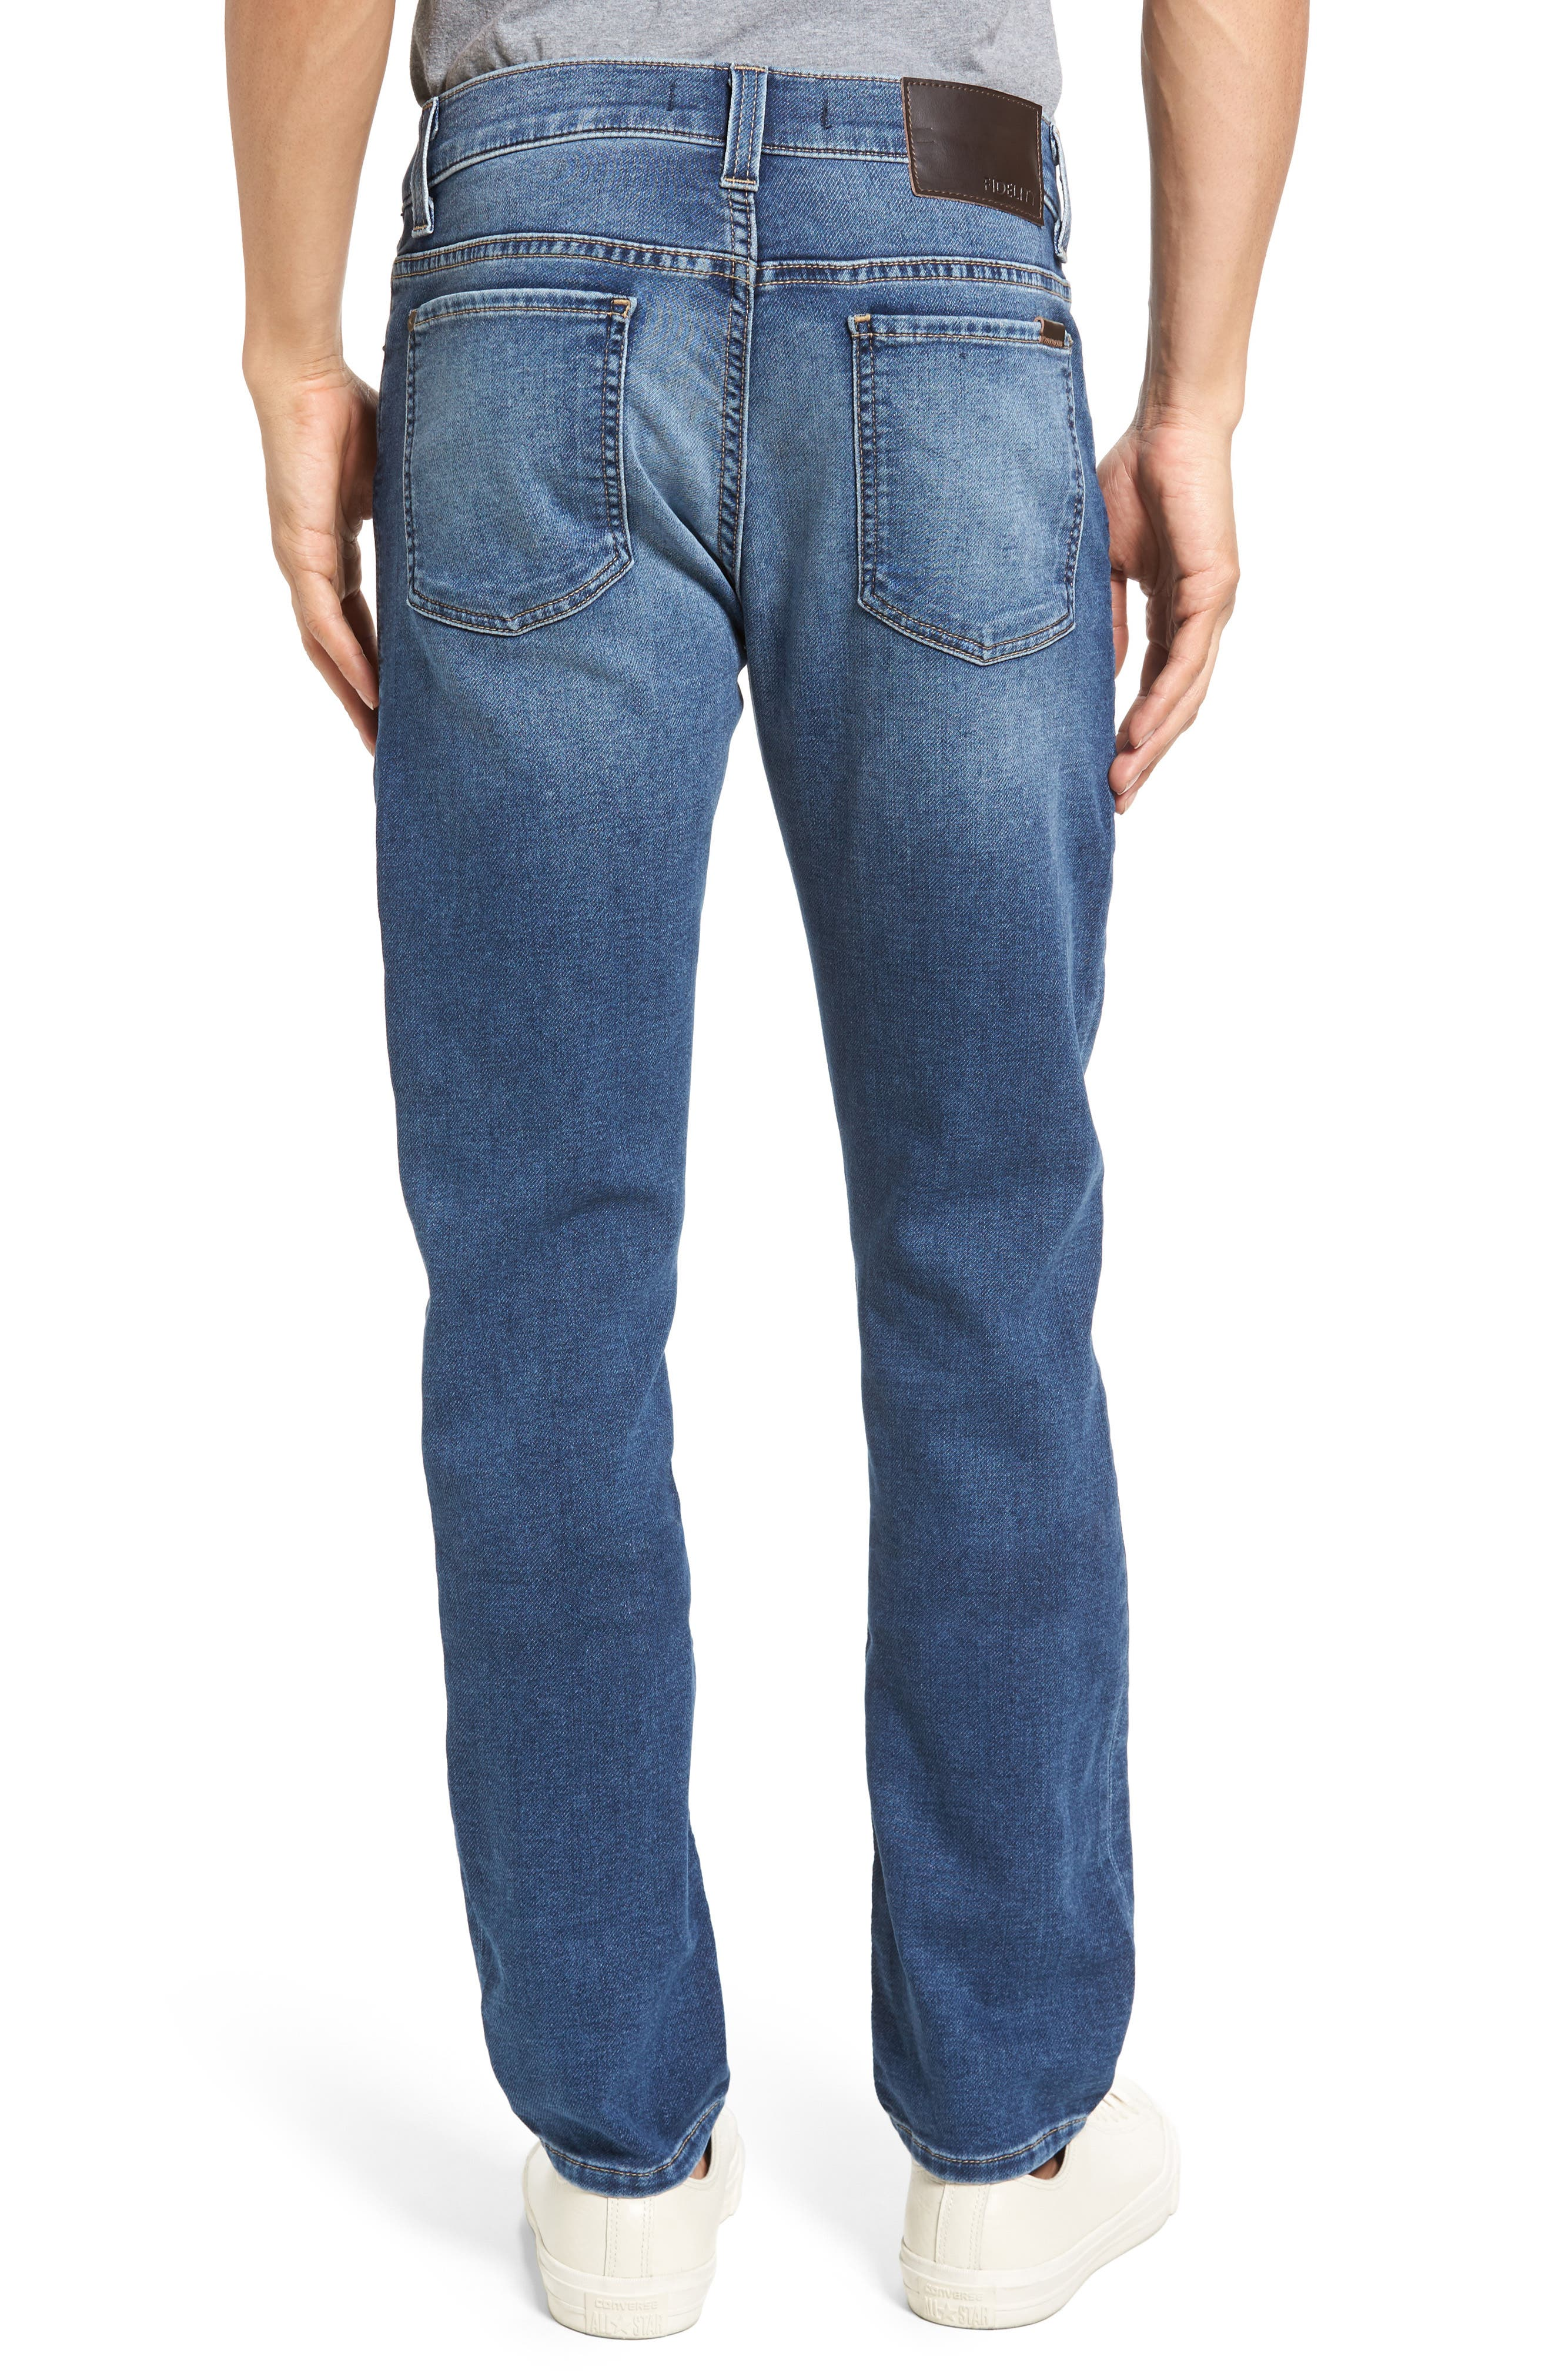 Fideliety Denim Torino Slim Fit Jeans,                             Alternate thumbnail 2, color,                             424